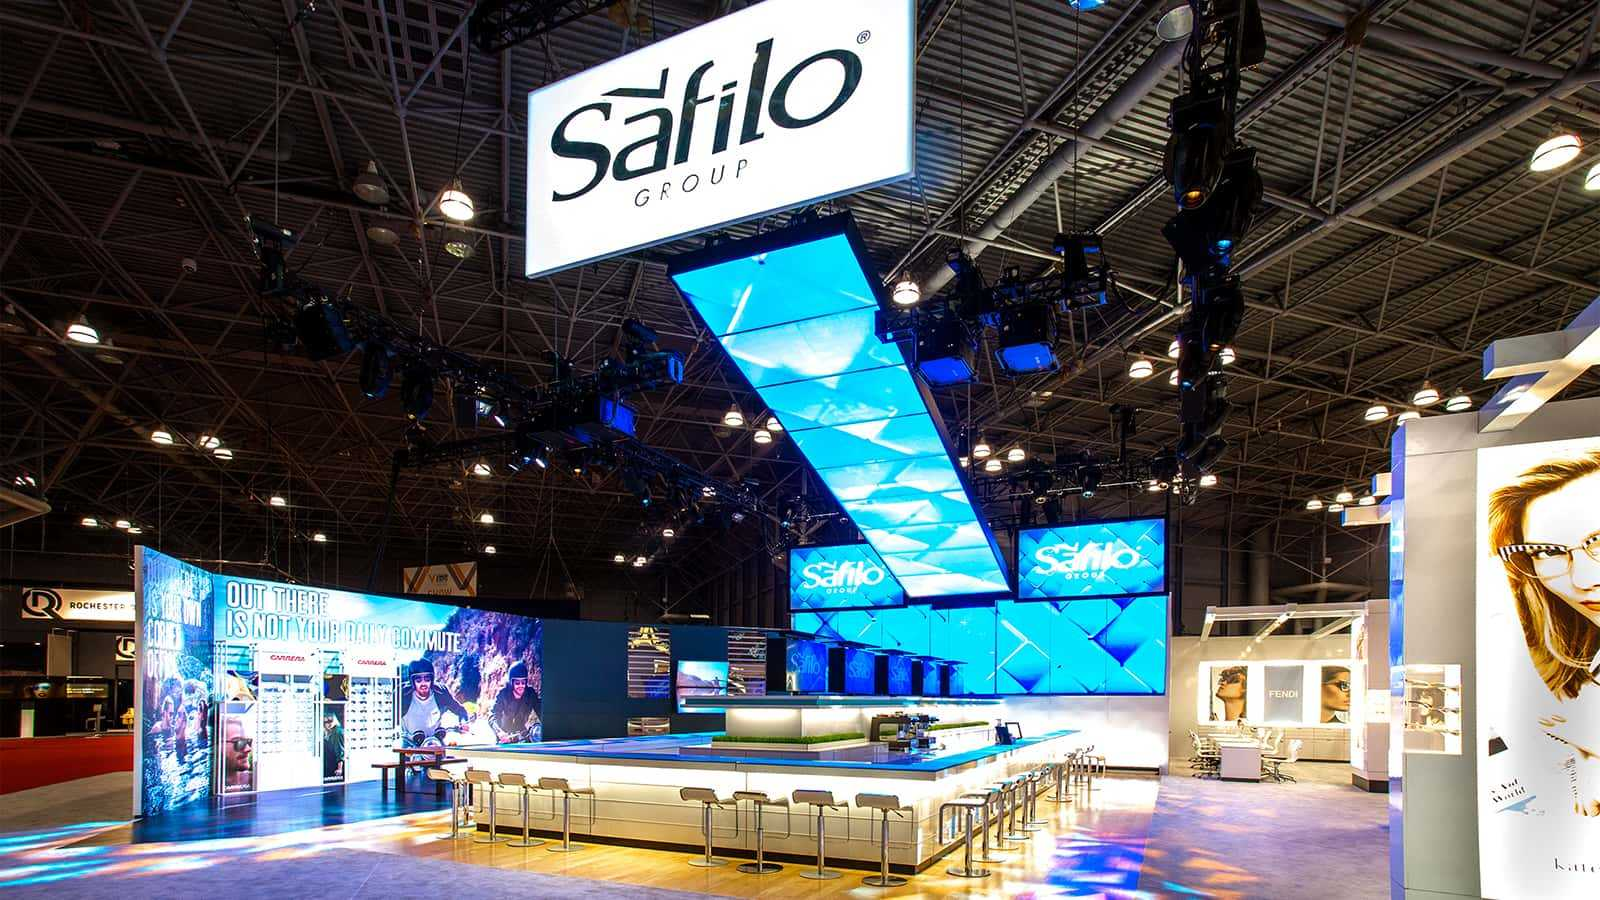 Safilo Vision East Expo 2015 Main Booth Front View